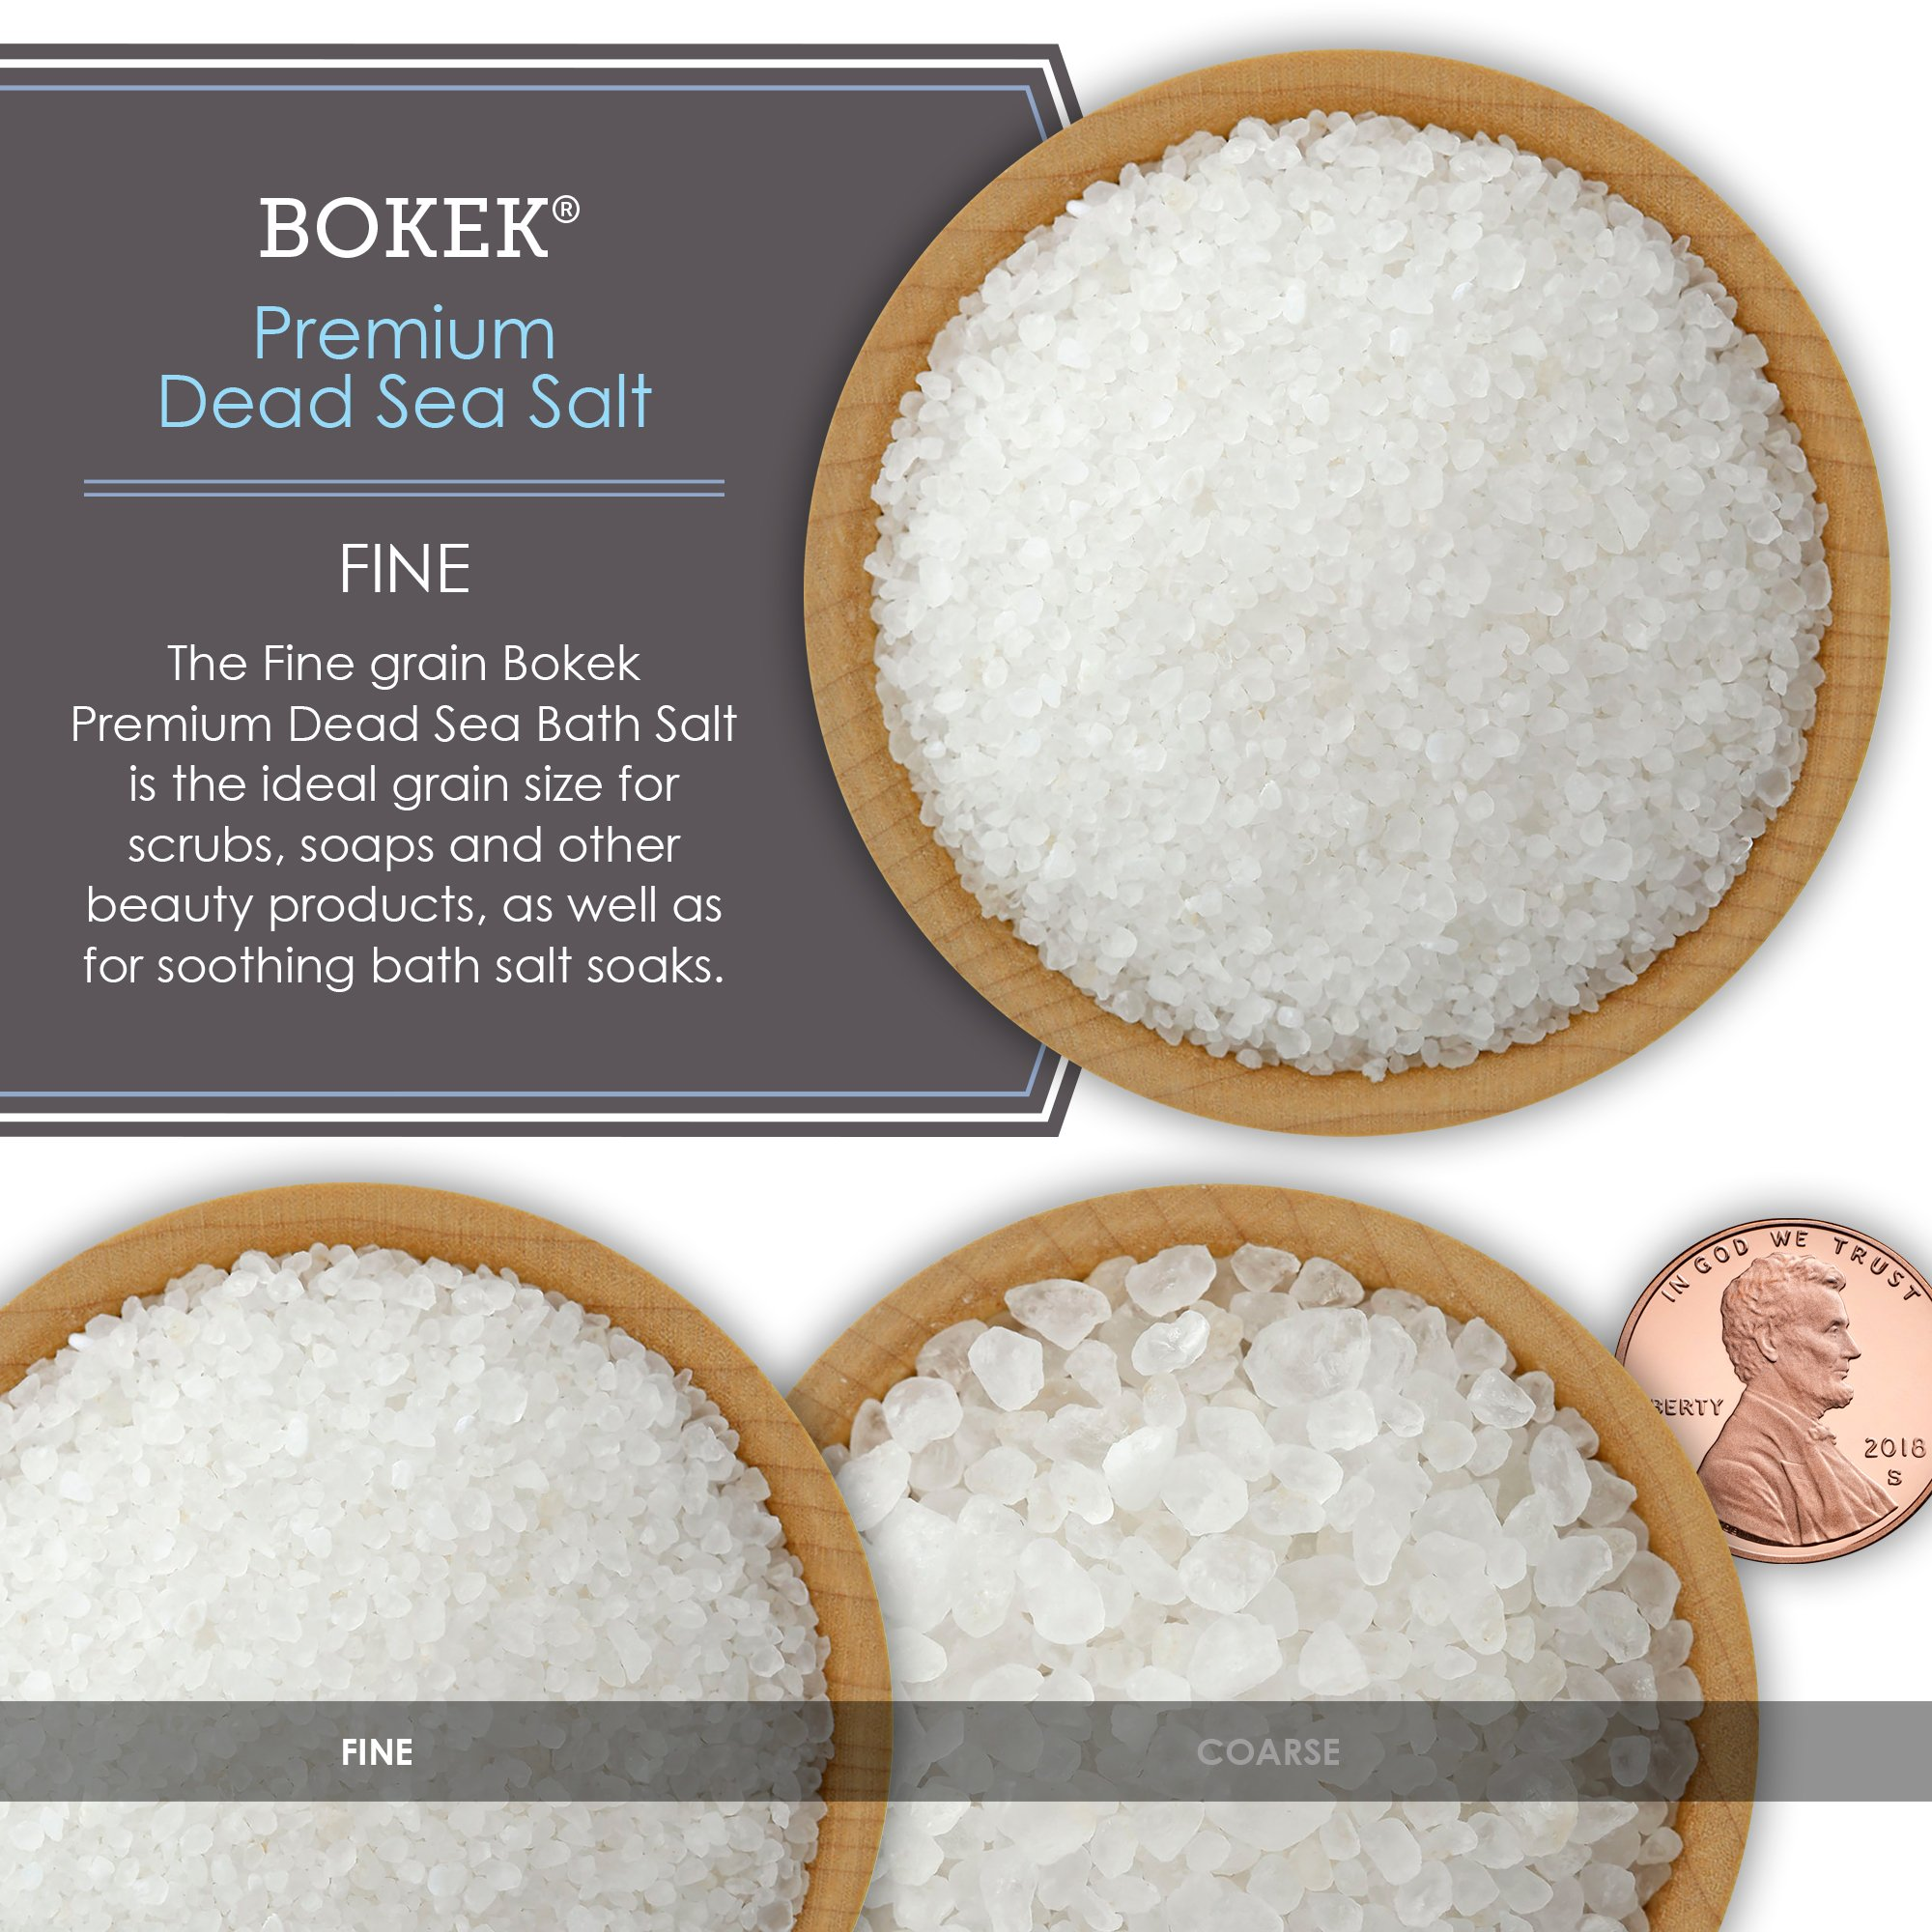 Bokek Dead Sea Salt, Fine - 55 lb Bag by SaltWorks (Image #6)